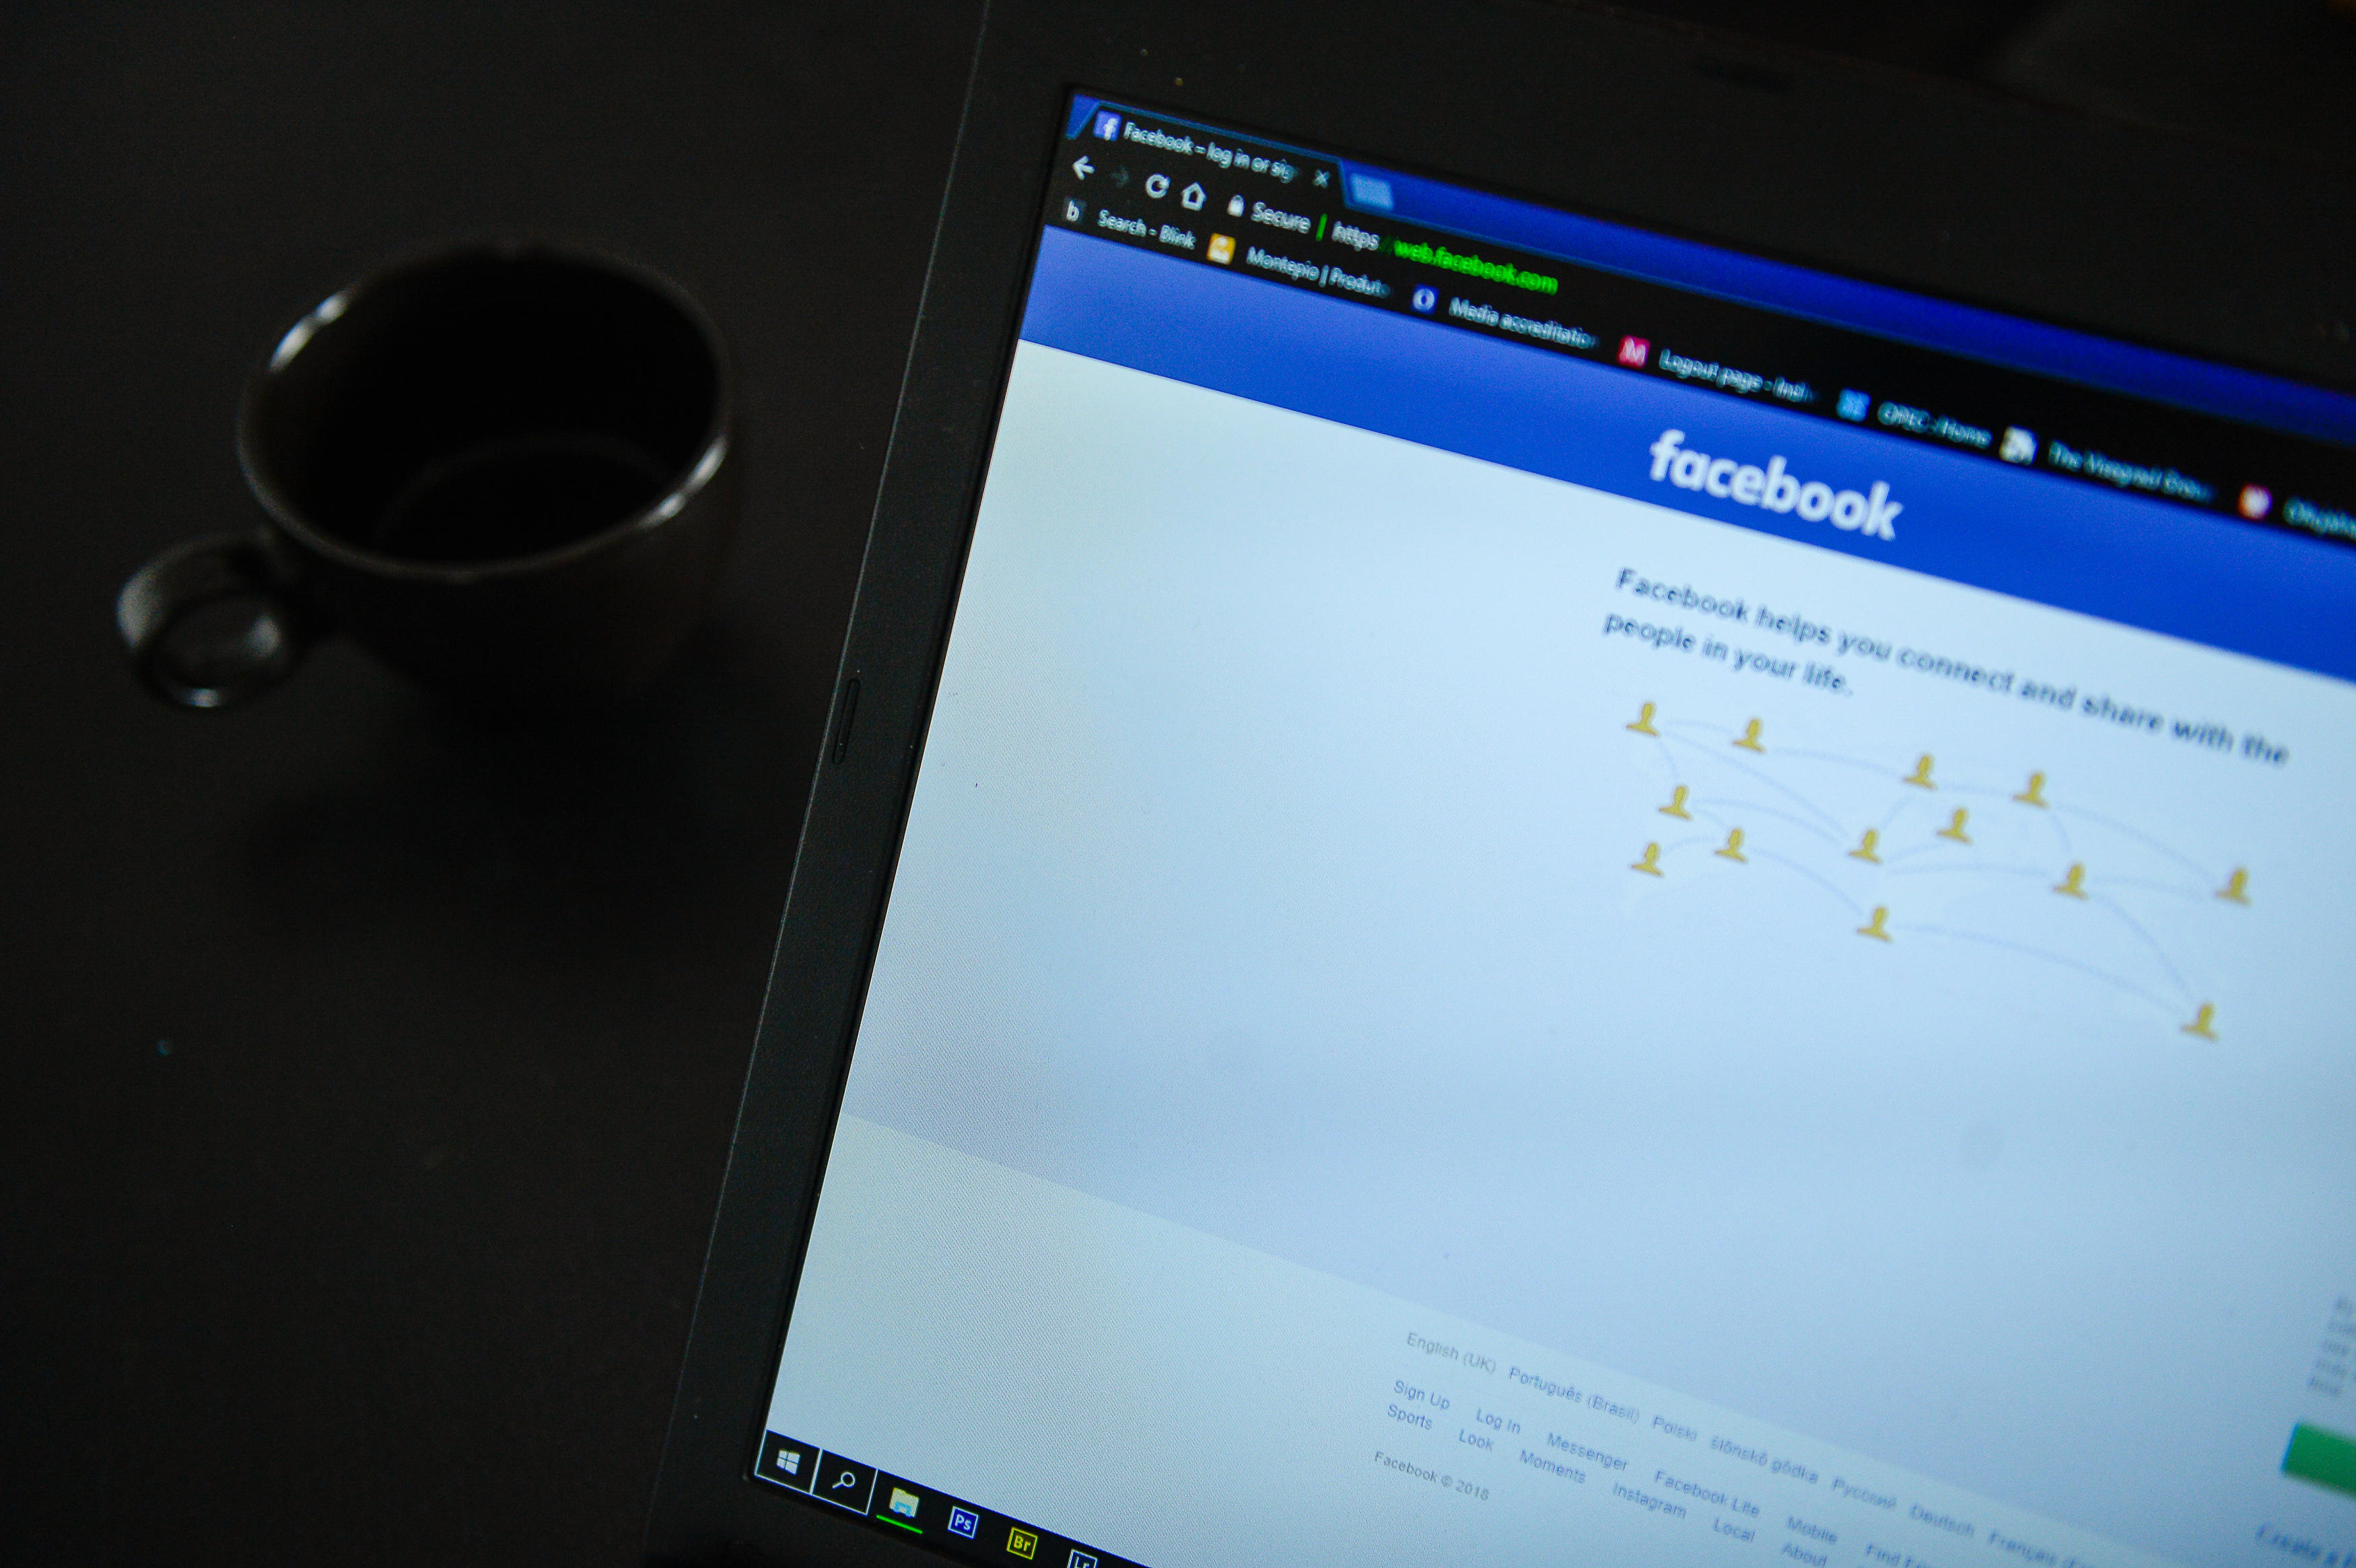 Facebook log in page is seen in a laptop